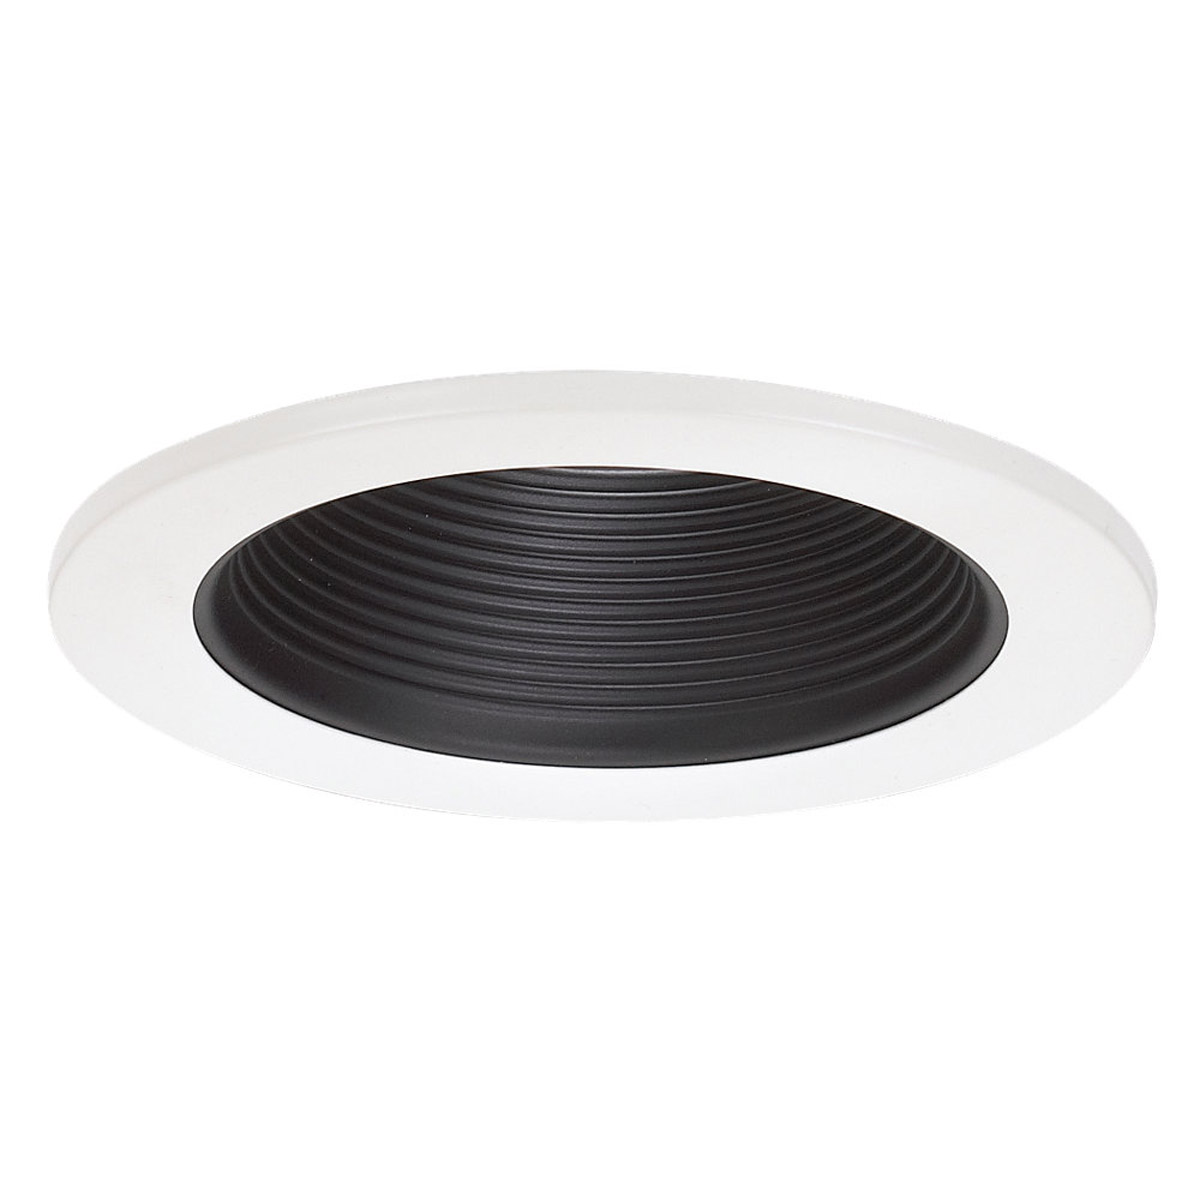 Sea Gull 1156AT-15 Signature White and Black Recessed Trim in Black Baffle photo